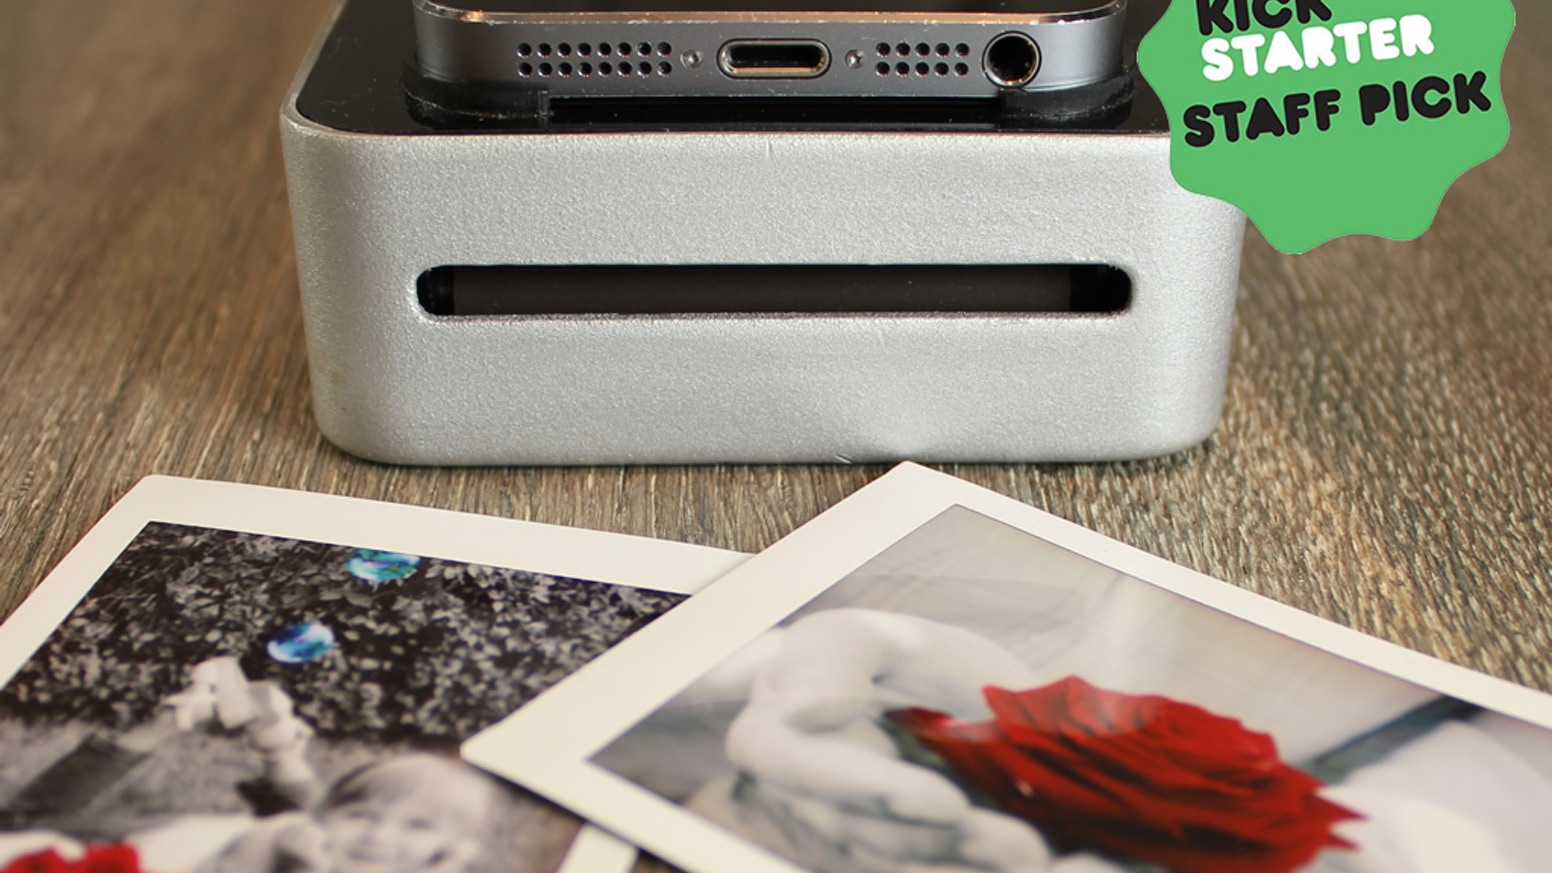 A high quality open-source photo printer that seamlessly interfaces with smartphones. No wires. No apps. Just beautiful images.